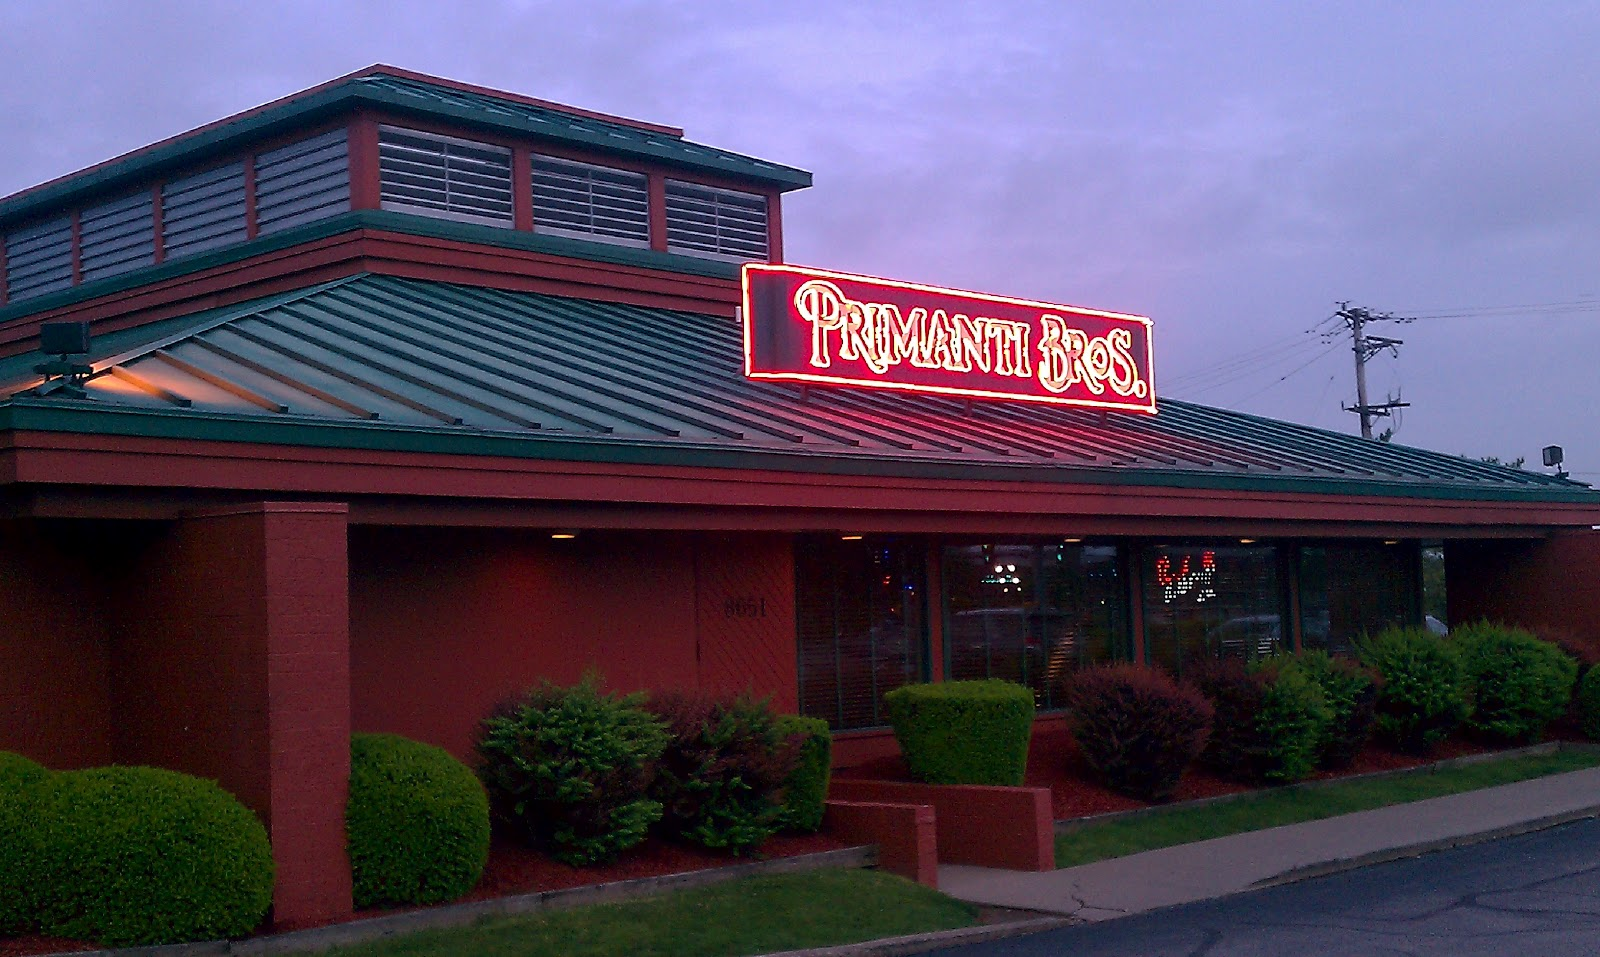 Primanti Brothers - Restaurants - 8651 University Blvd, Coraopolis, PA, United States